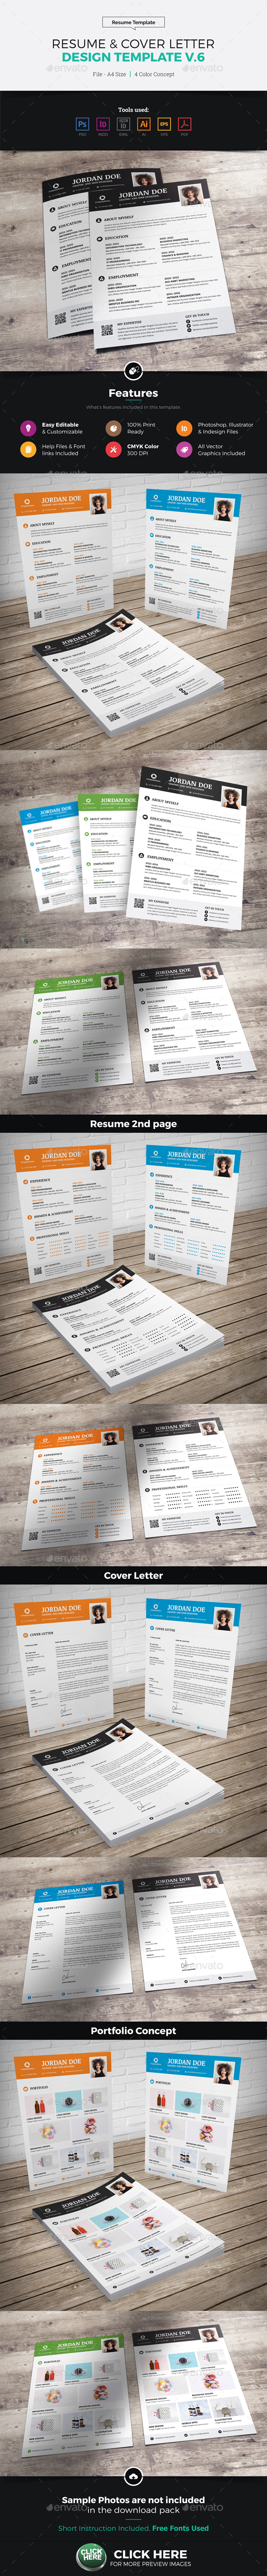 Resume & Cover Letter Design v6 - Resumes Stationery